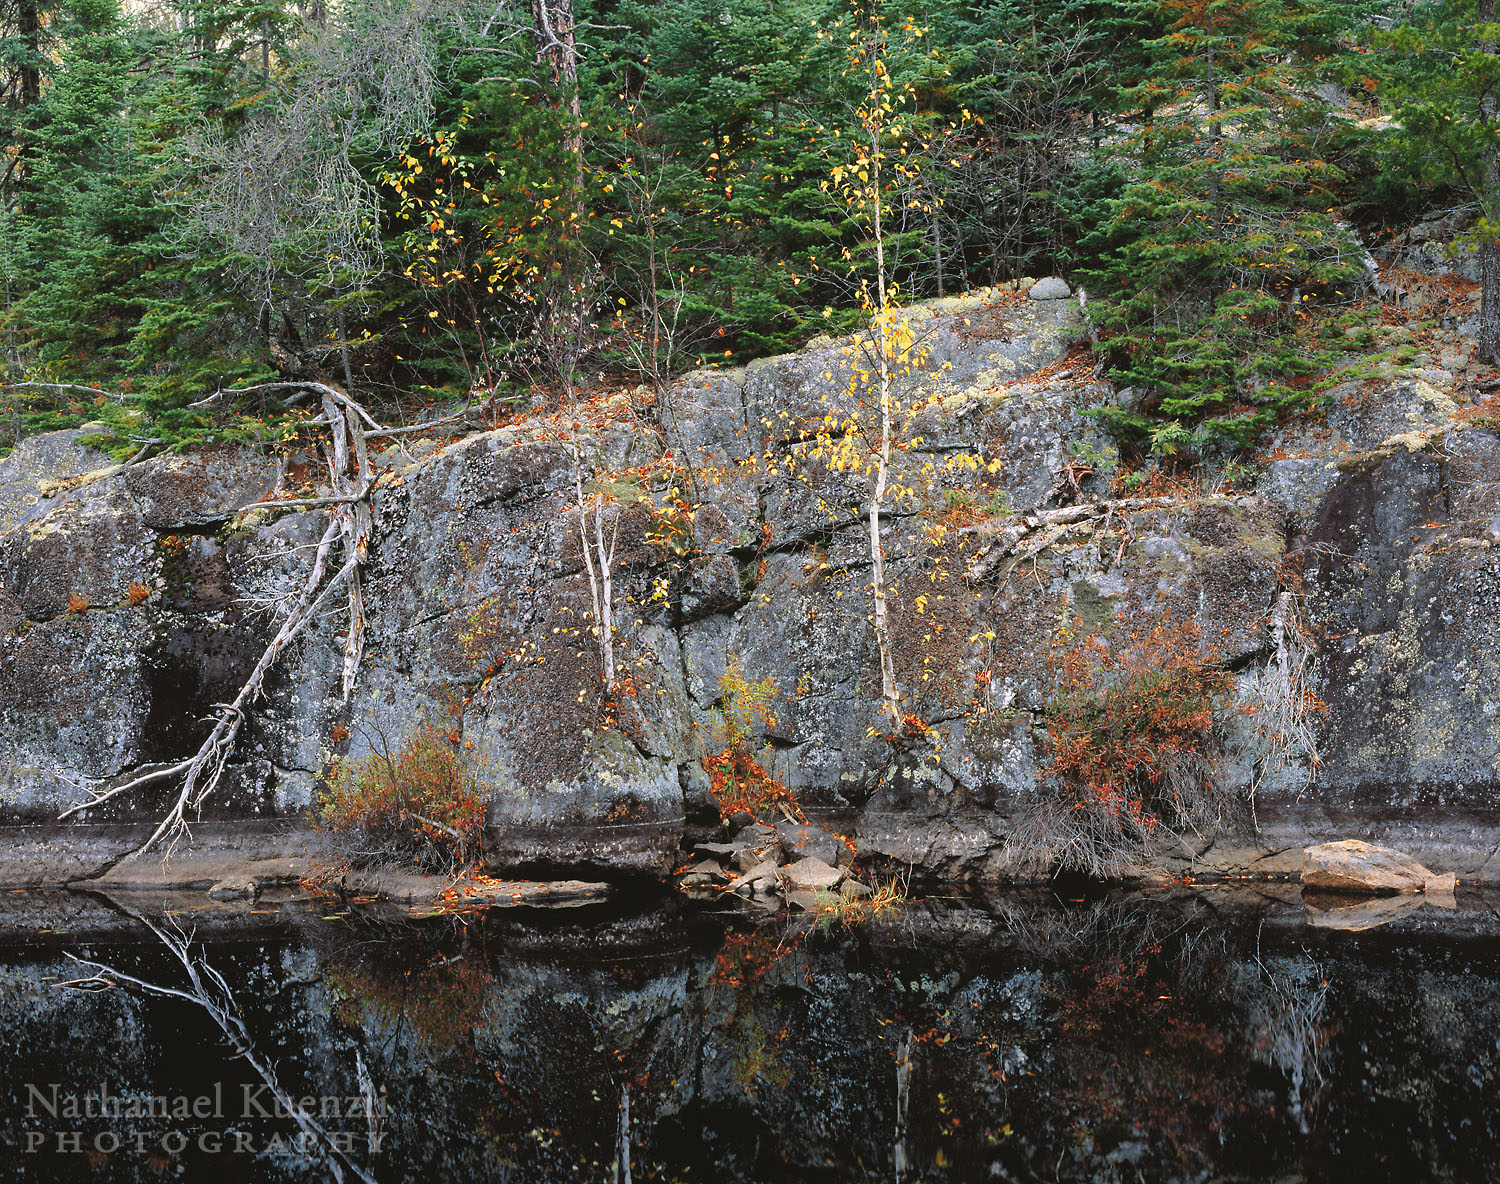 Cherokee Creek, Boundary Waters Canoe Area Wilderness, Minnesota, October 2005